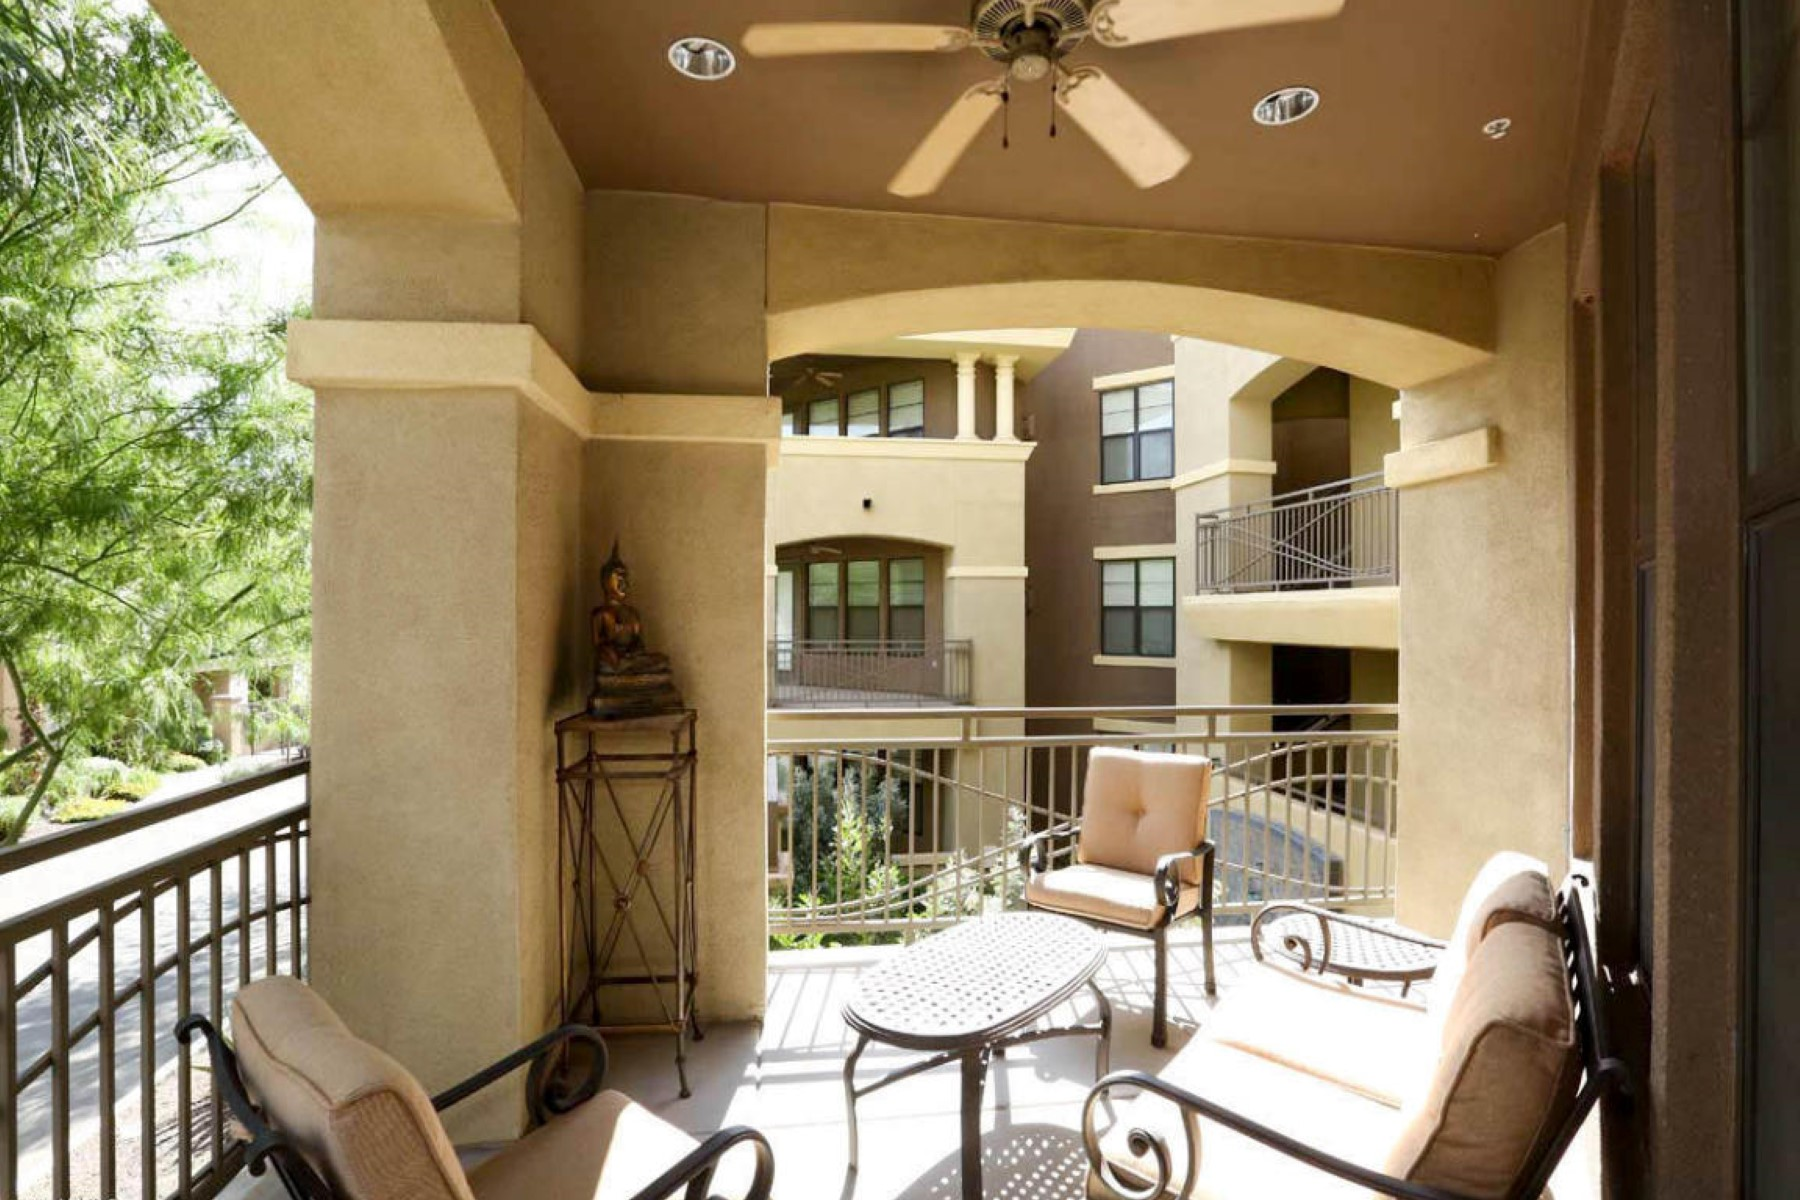 Apartment for Sale at Exceptional condo in the resort-like community of Corriente 7601 E INDIAN BEND RD 2032 Scottsdale, Arizona 85250 United States